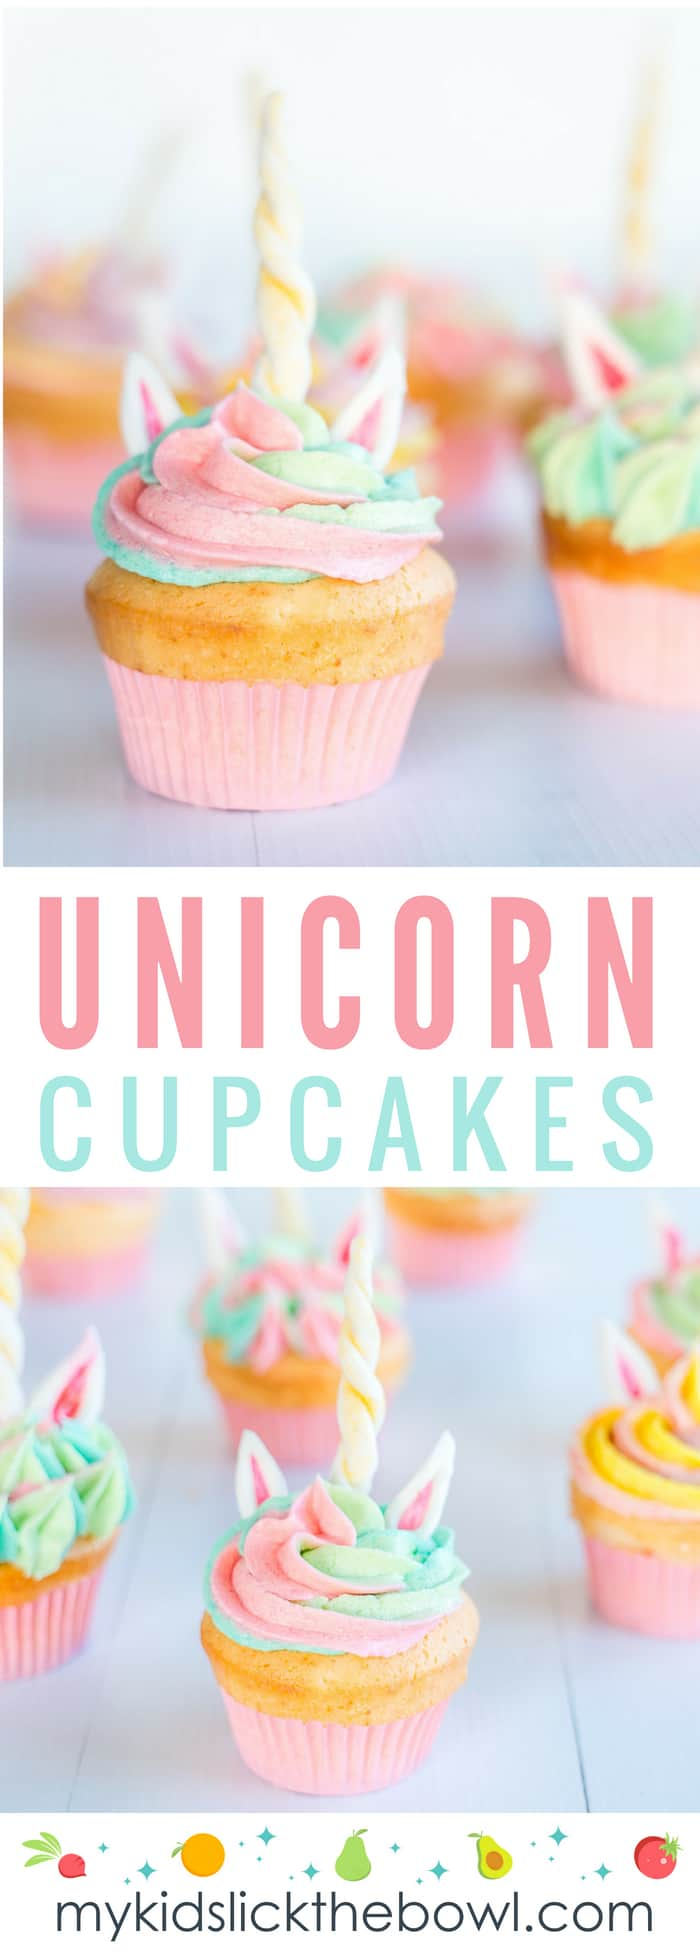 unicorn cupcakes with rainbow butter cream icing